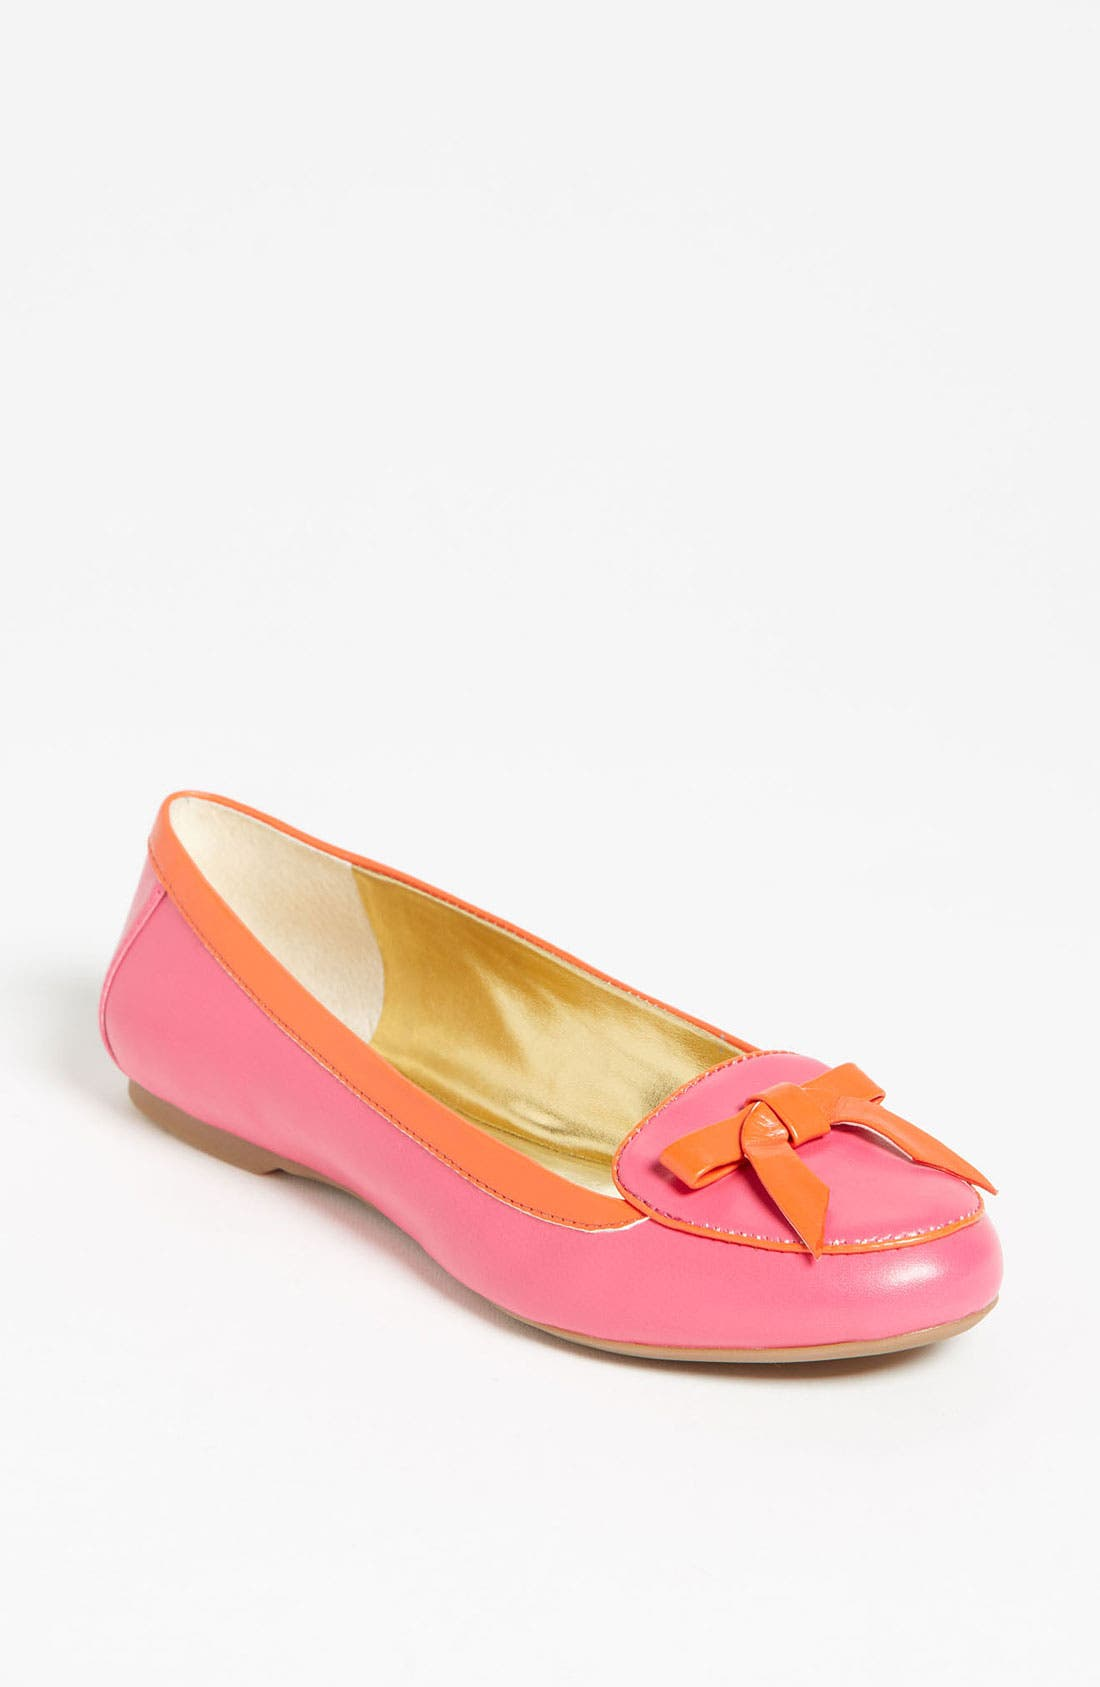 Main Image - Julianne Hough for Sole Society 'Maddi' Loafer